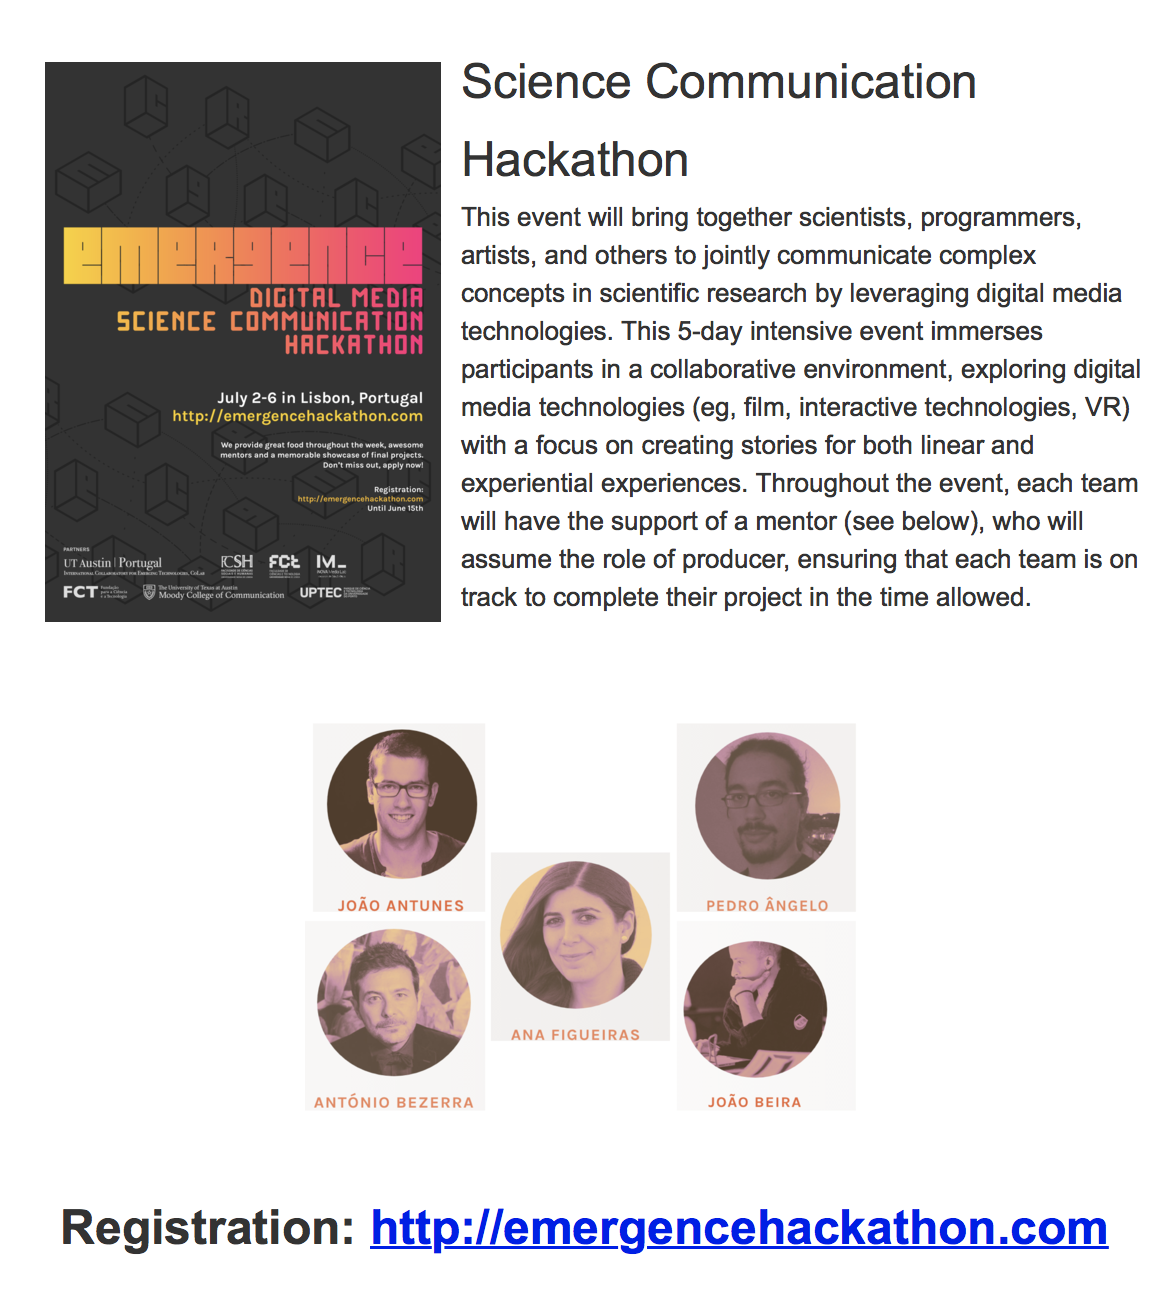 science communication hackathon